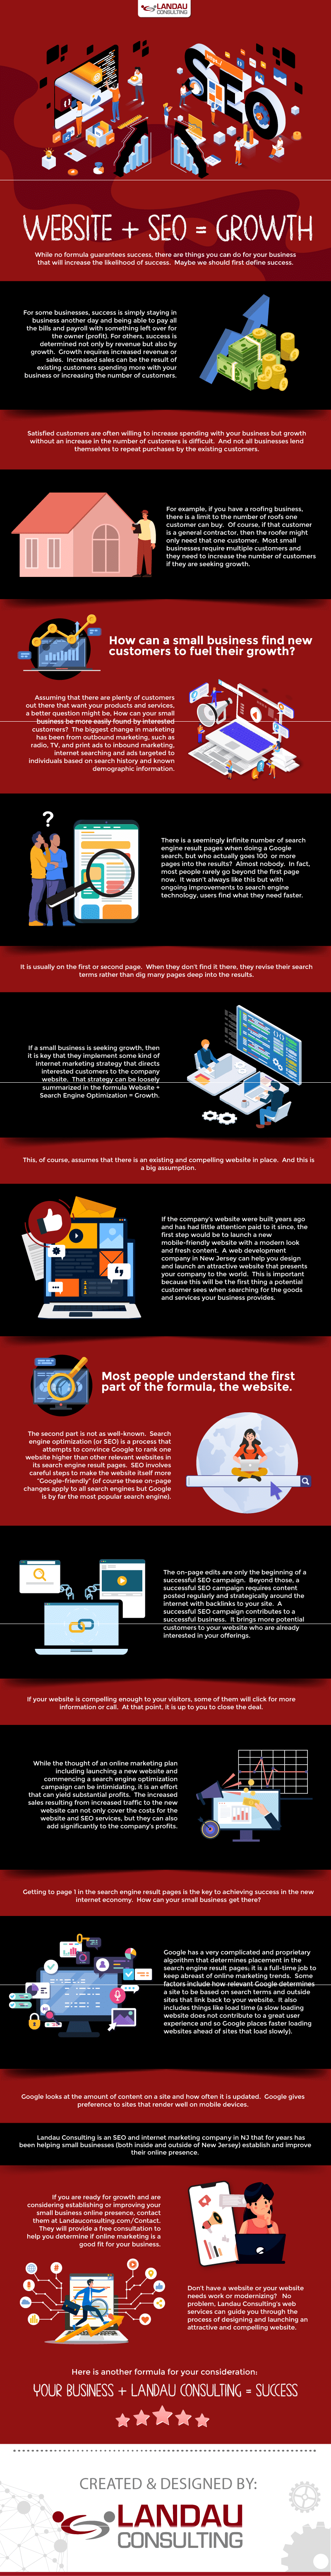 Website + SEO = Growth - Infographic